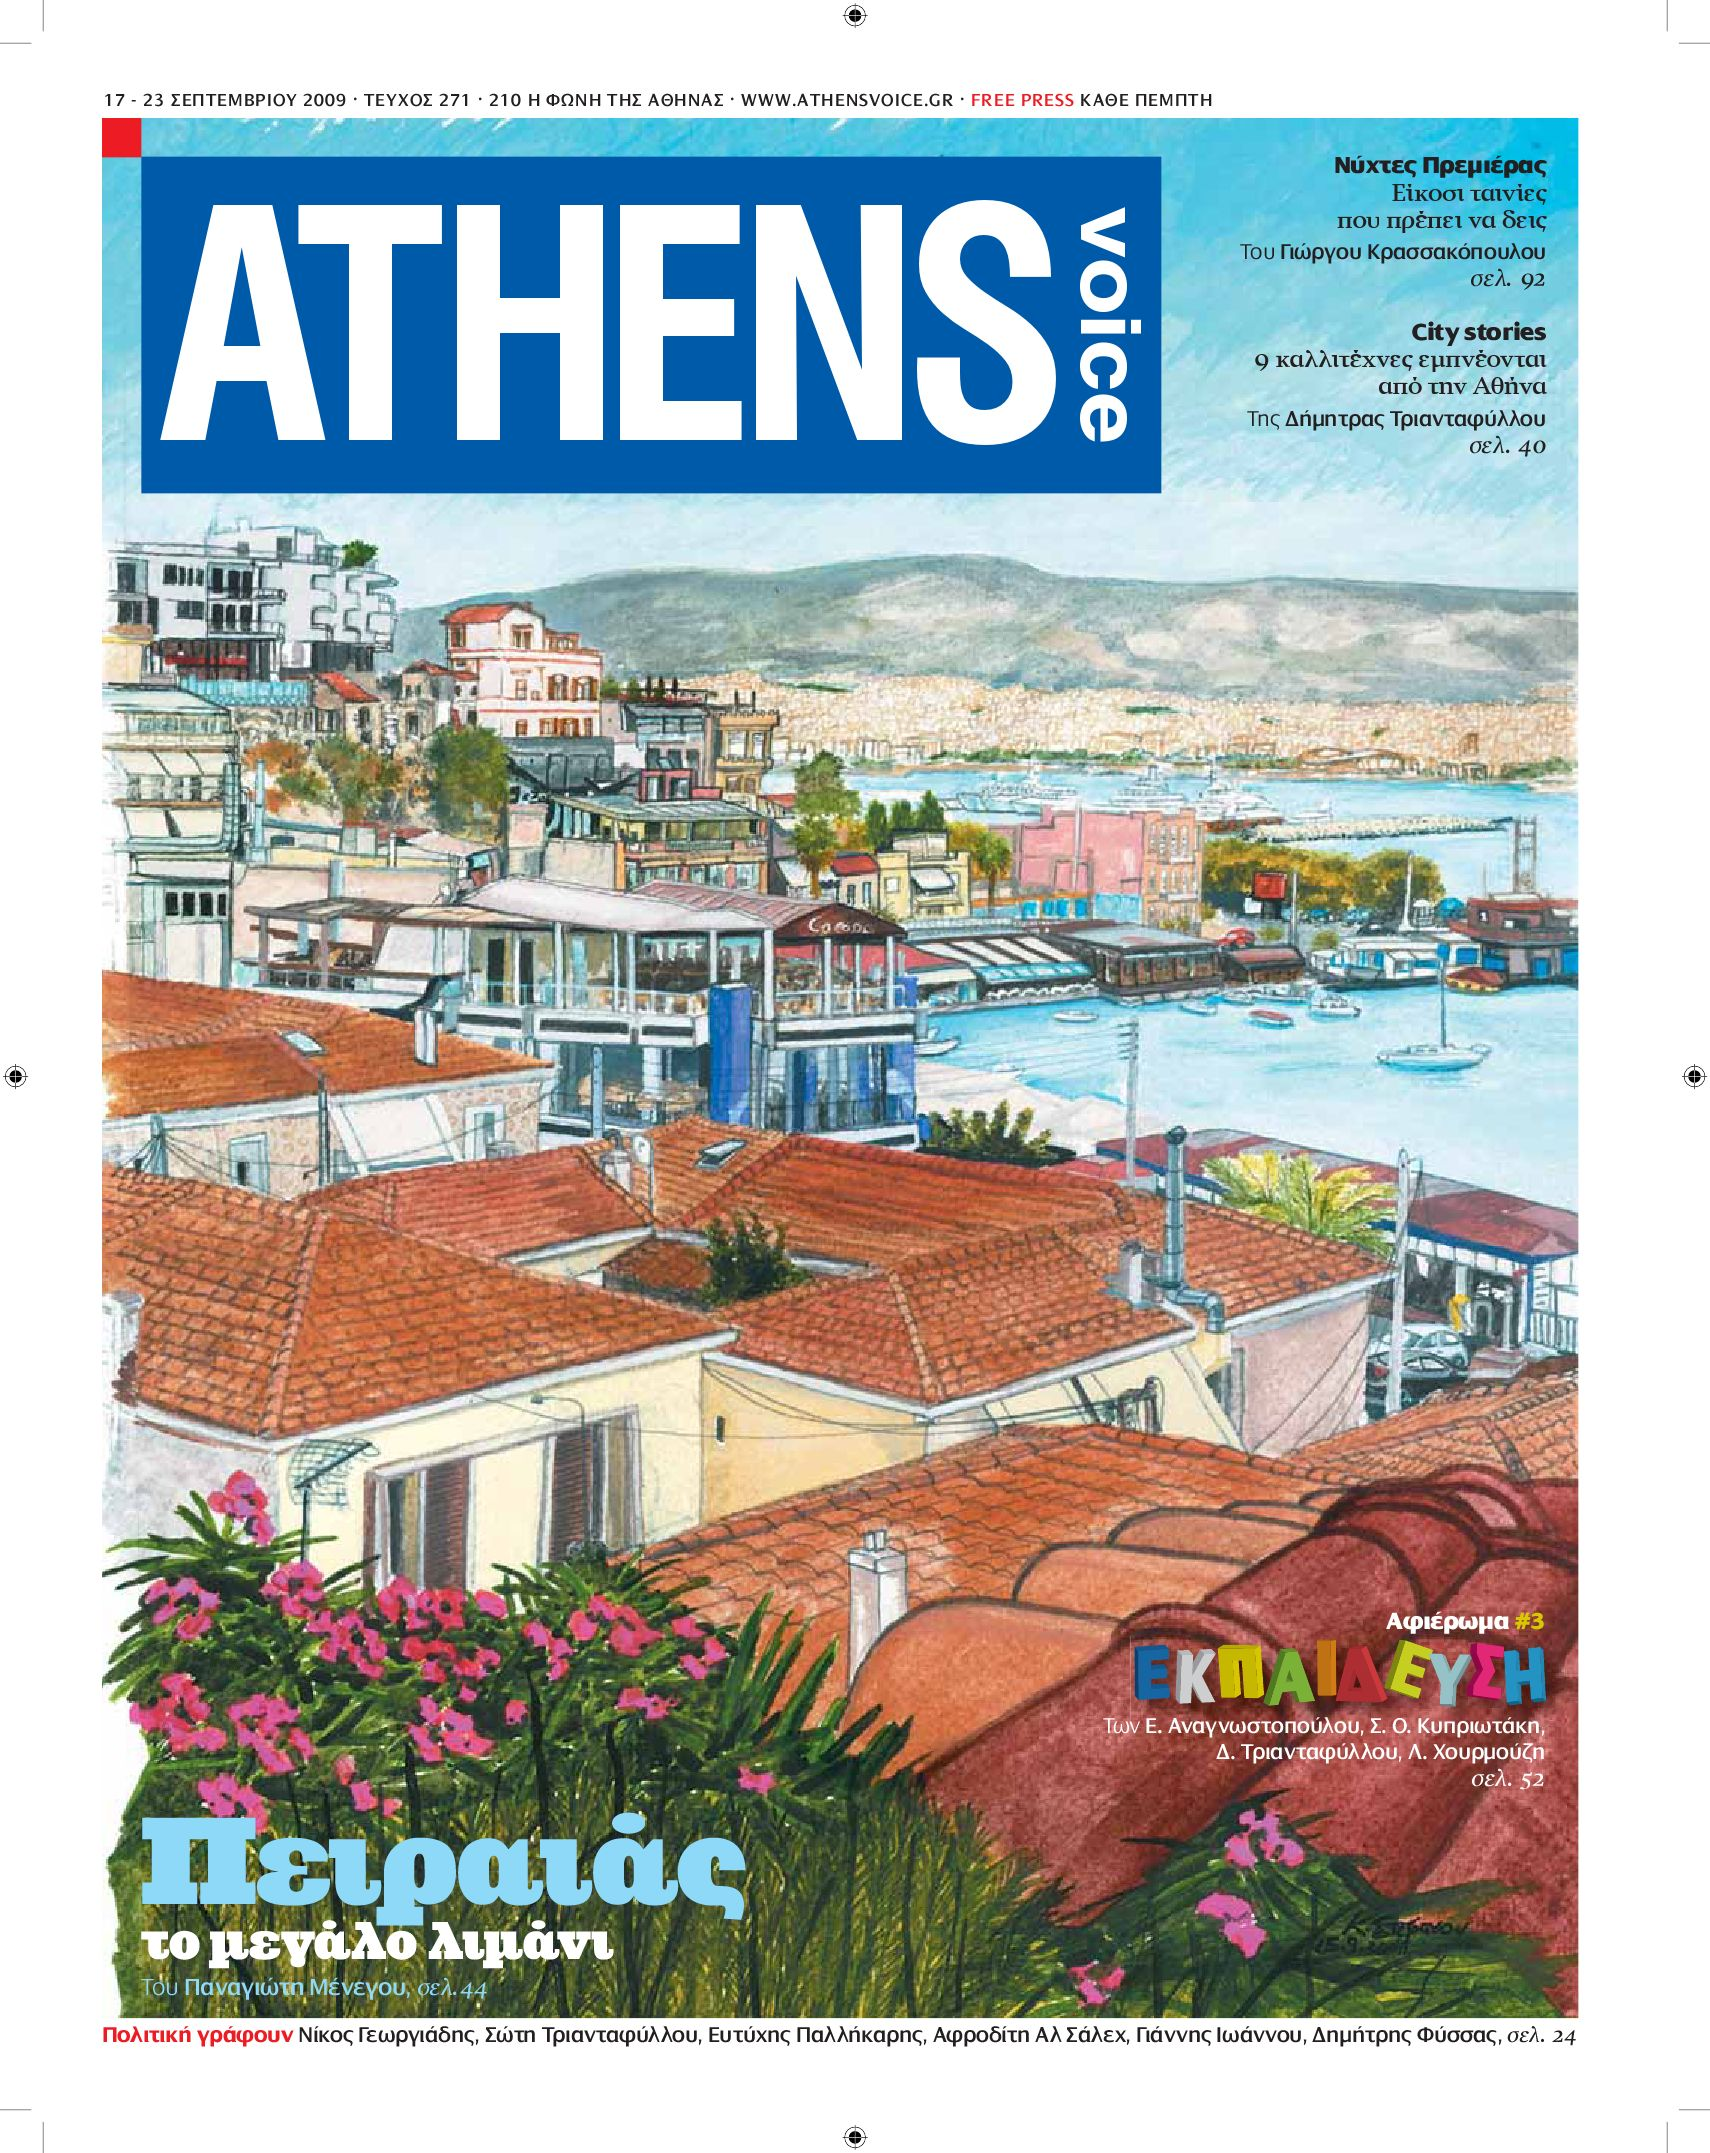 Athens Voice 271 by Athens Voice - issuu 52393f41aee